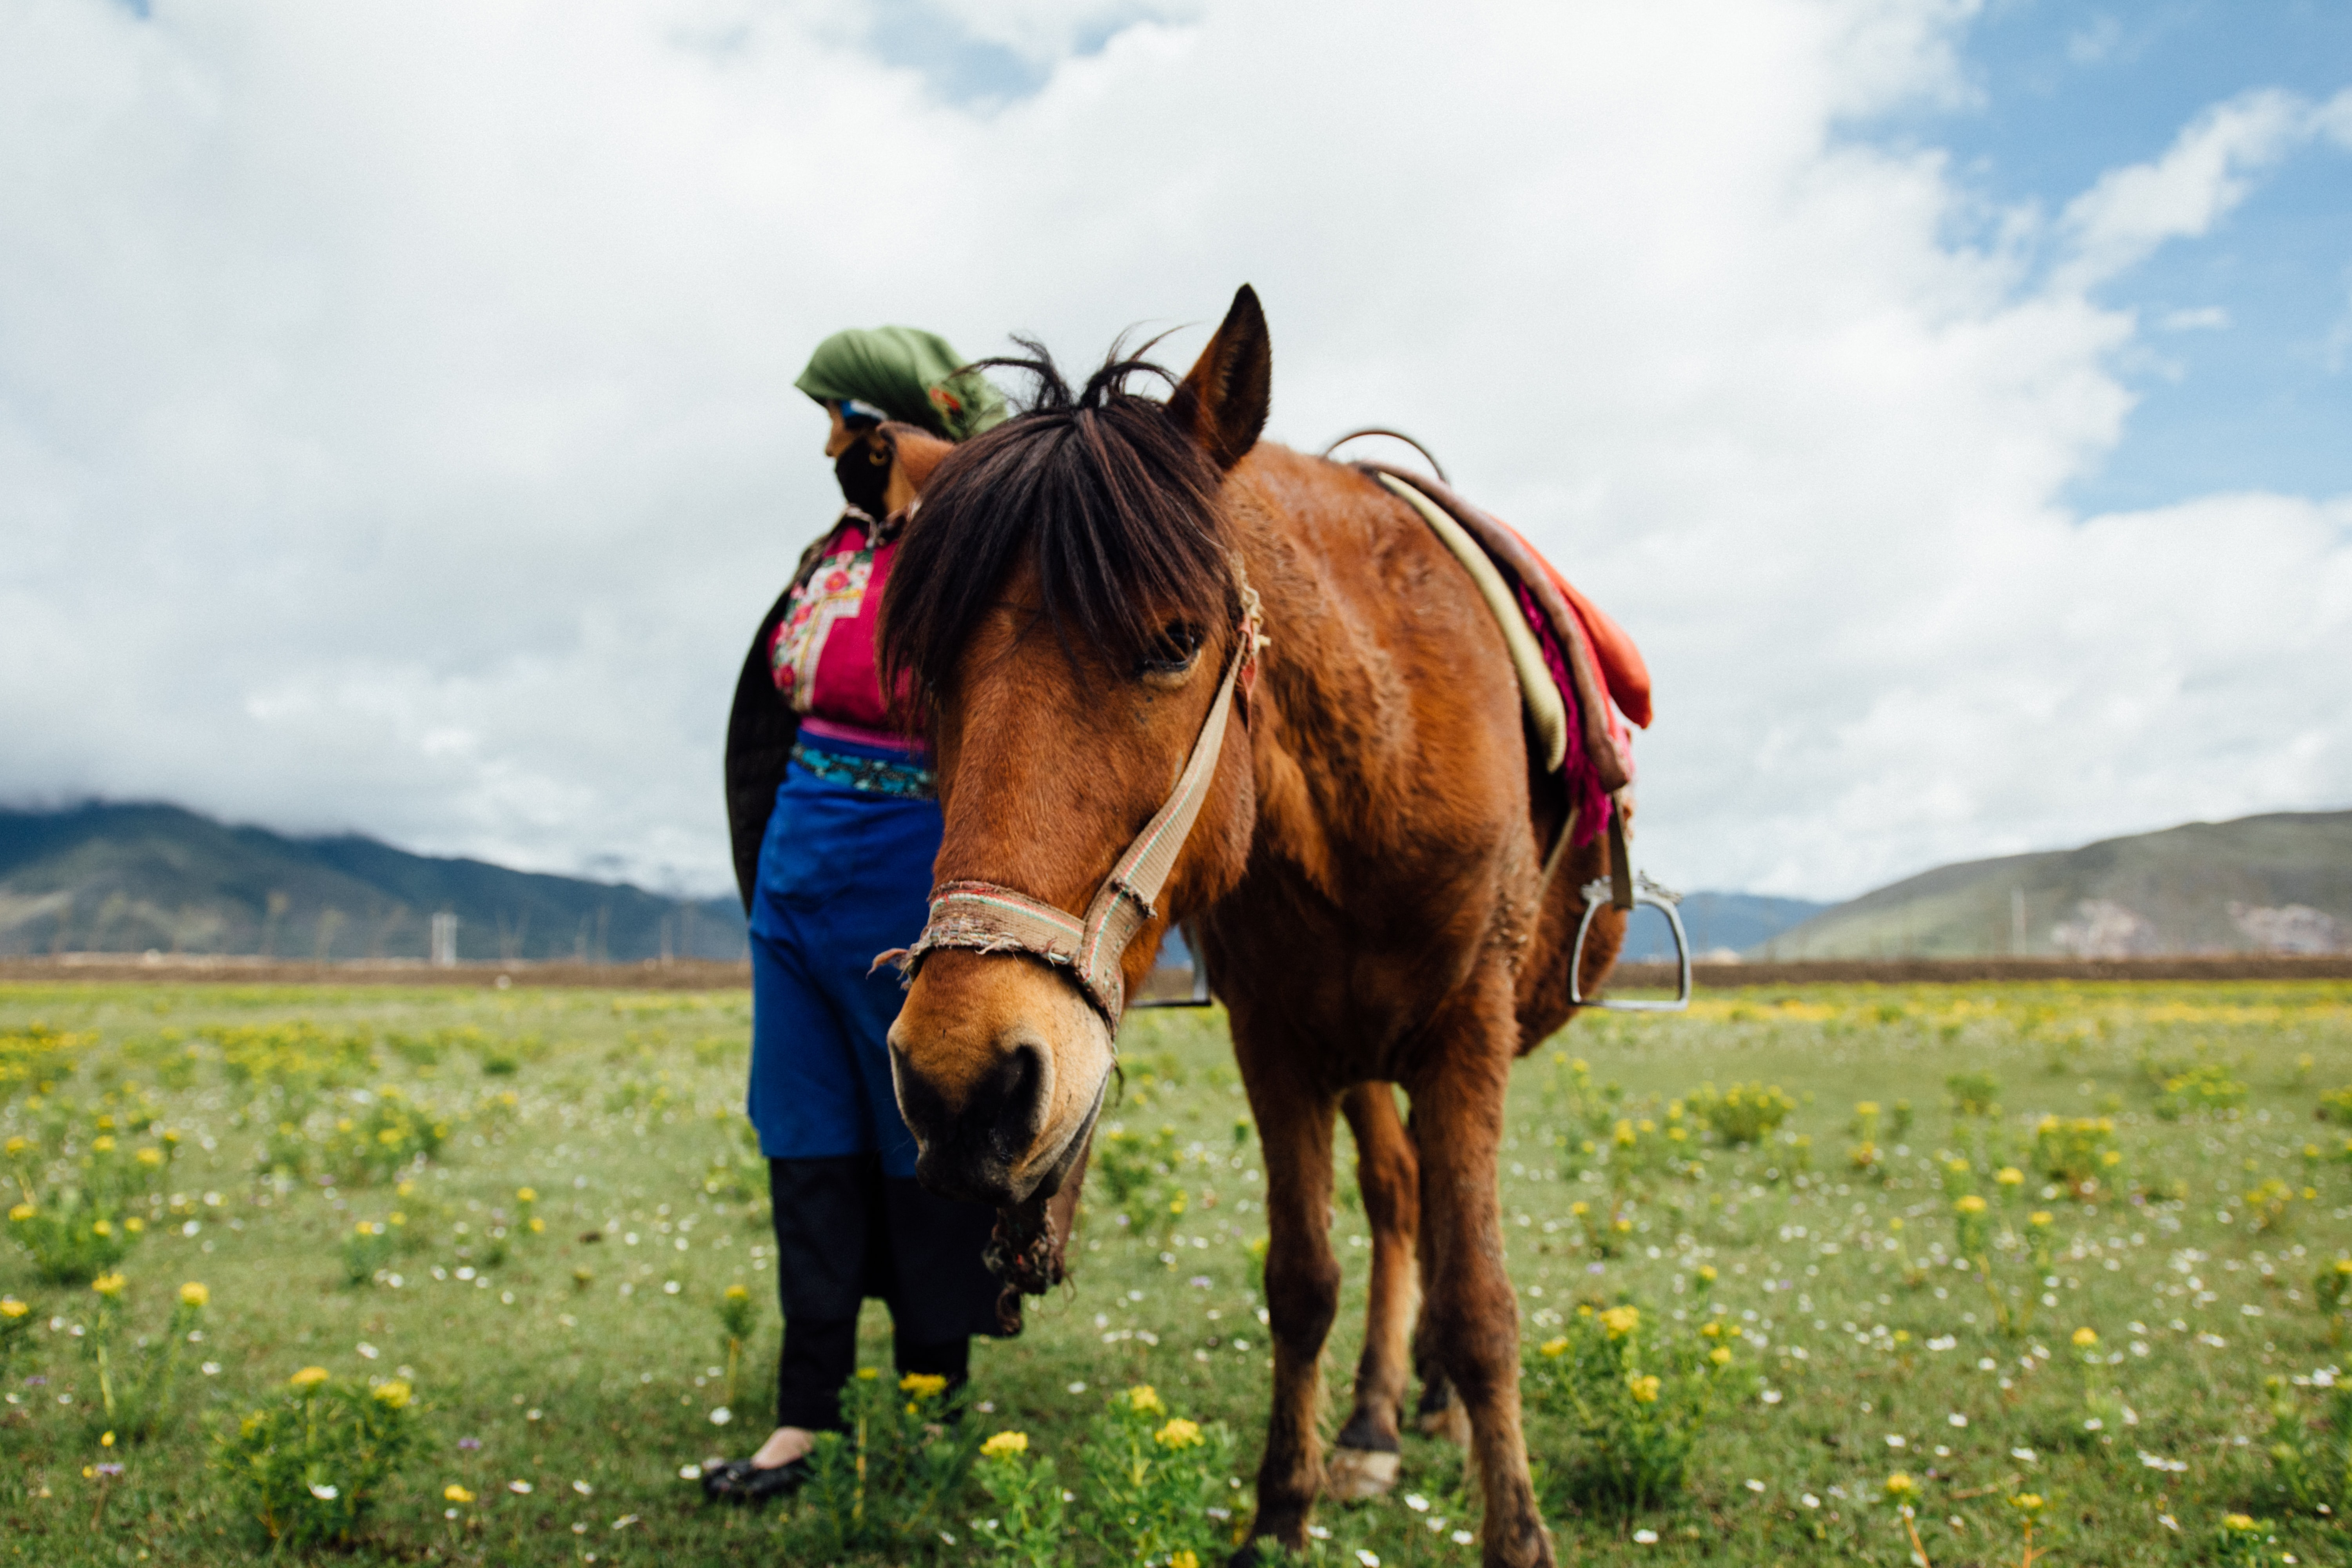 brown horse beside woman on green grass field during daytime